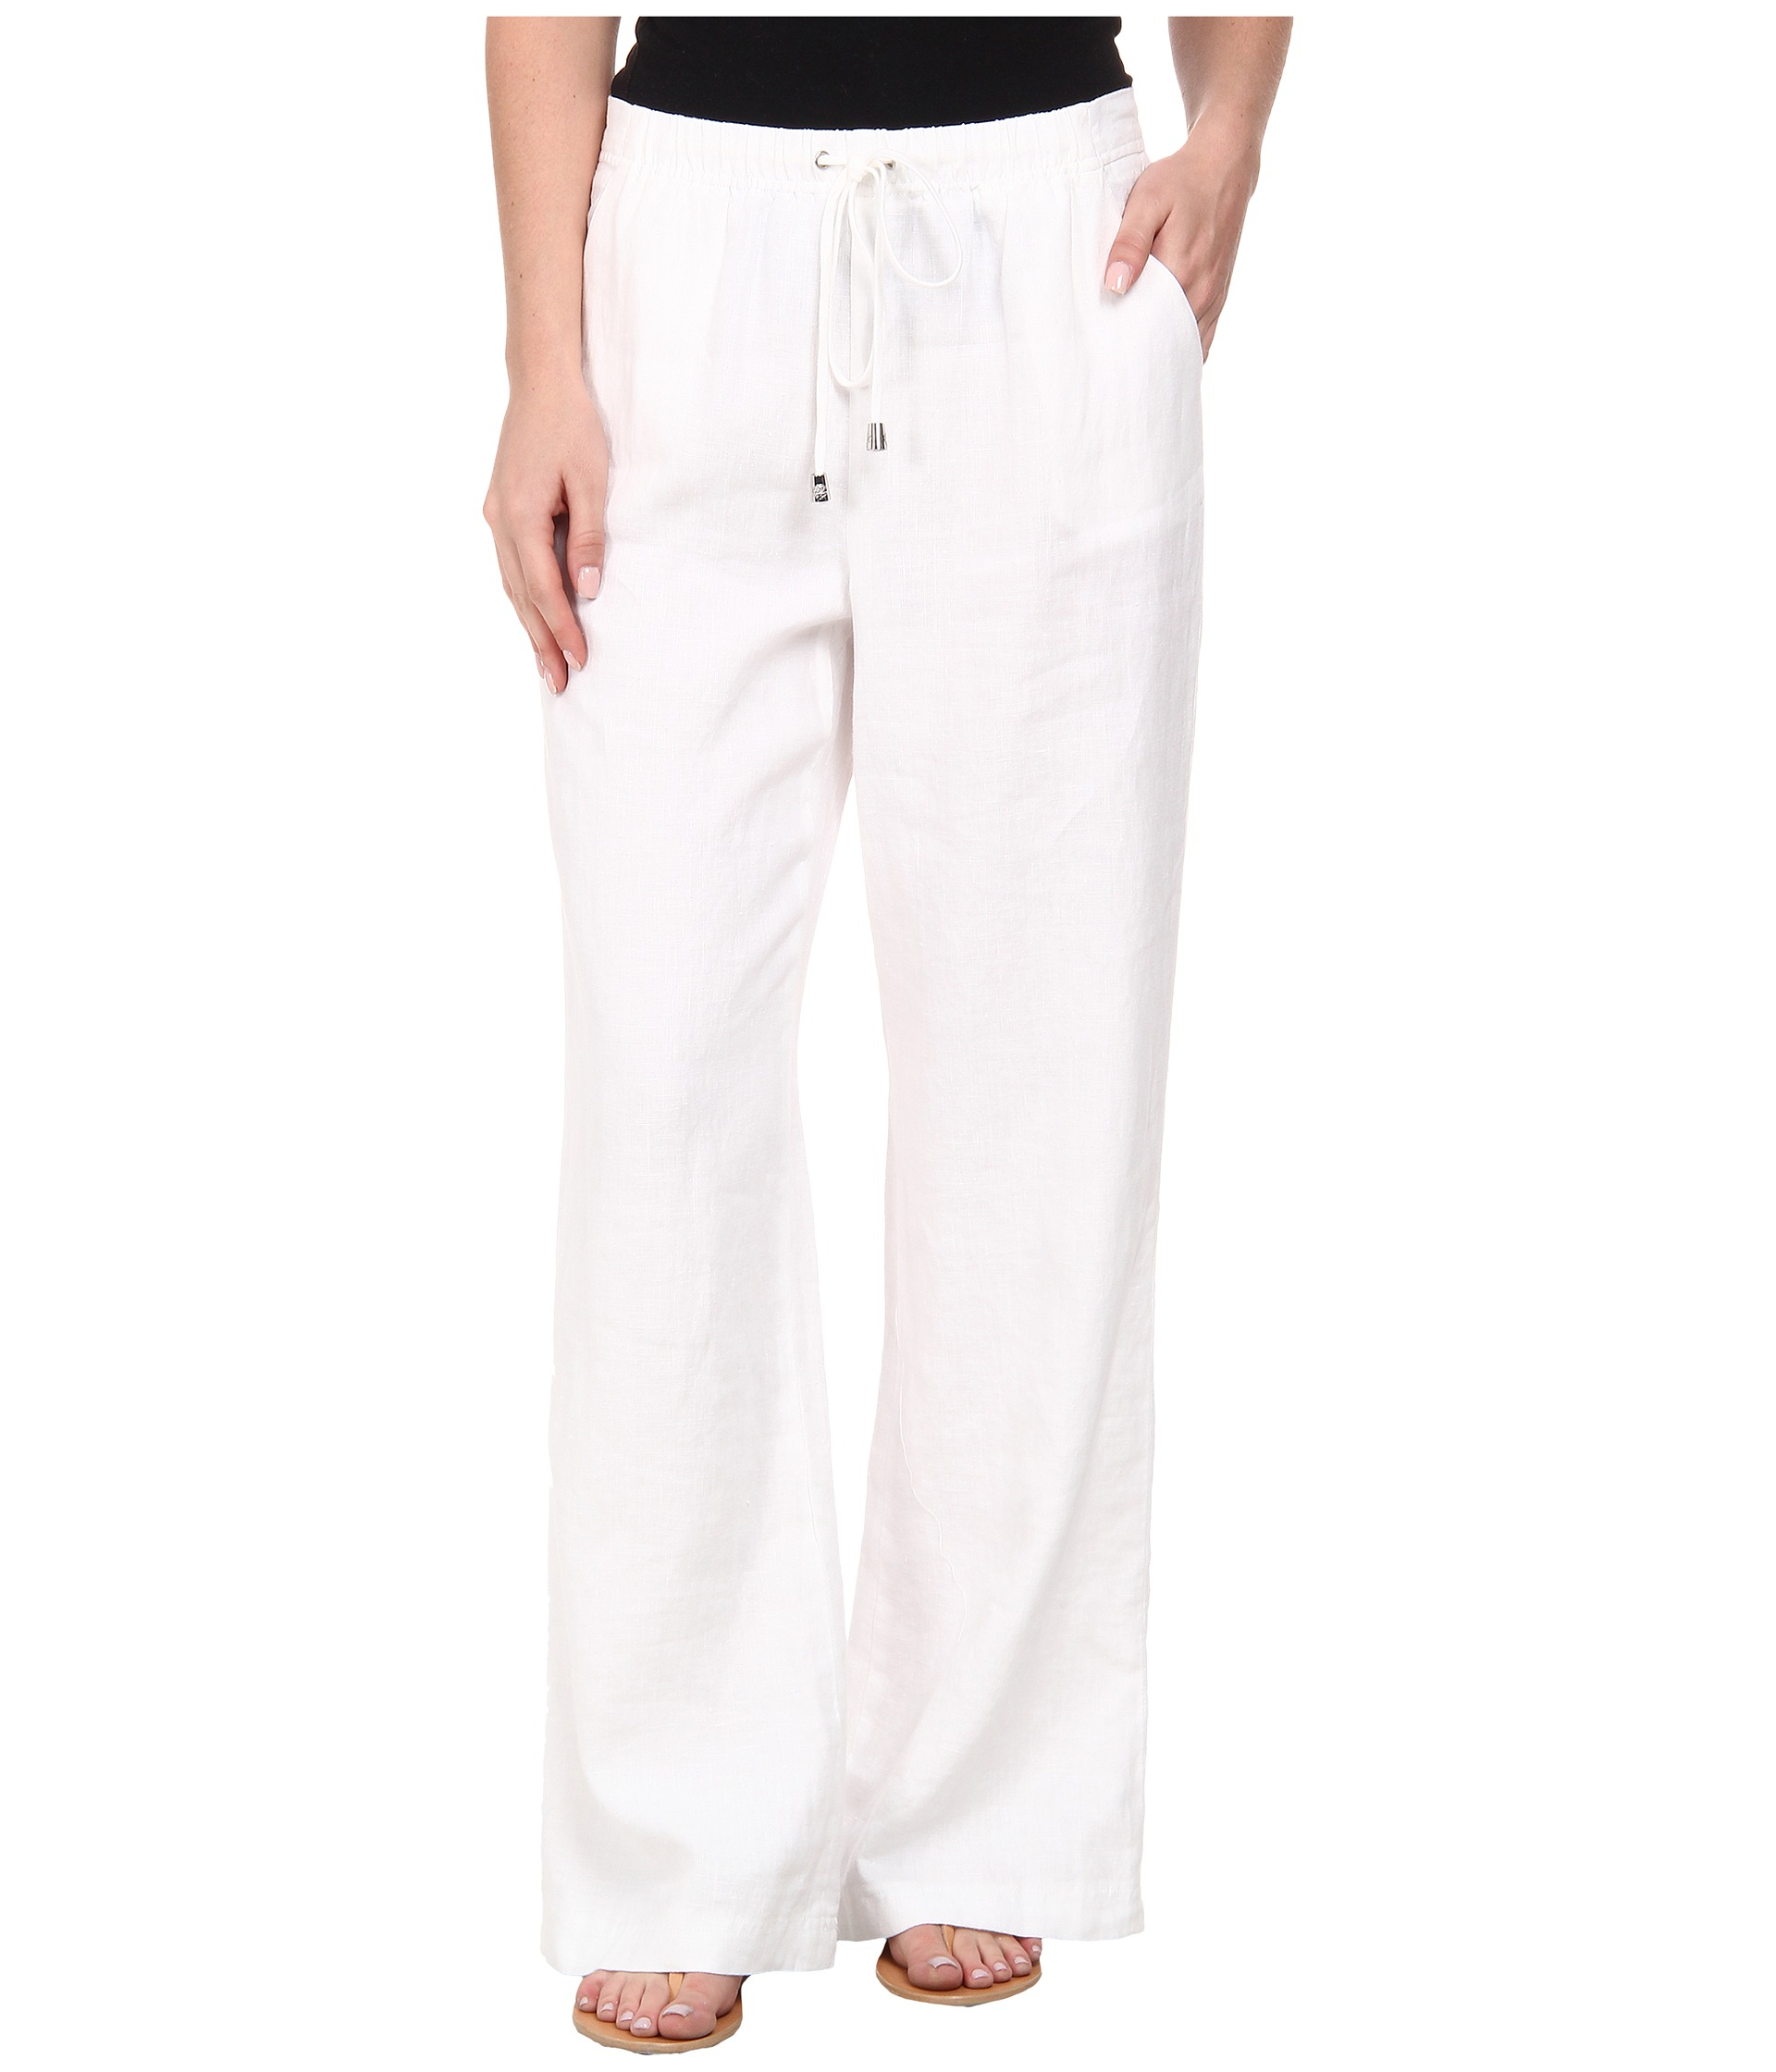 Vince camuto Wide Leg Linen Pants W/ Drawstring Waist in White | Lyst